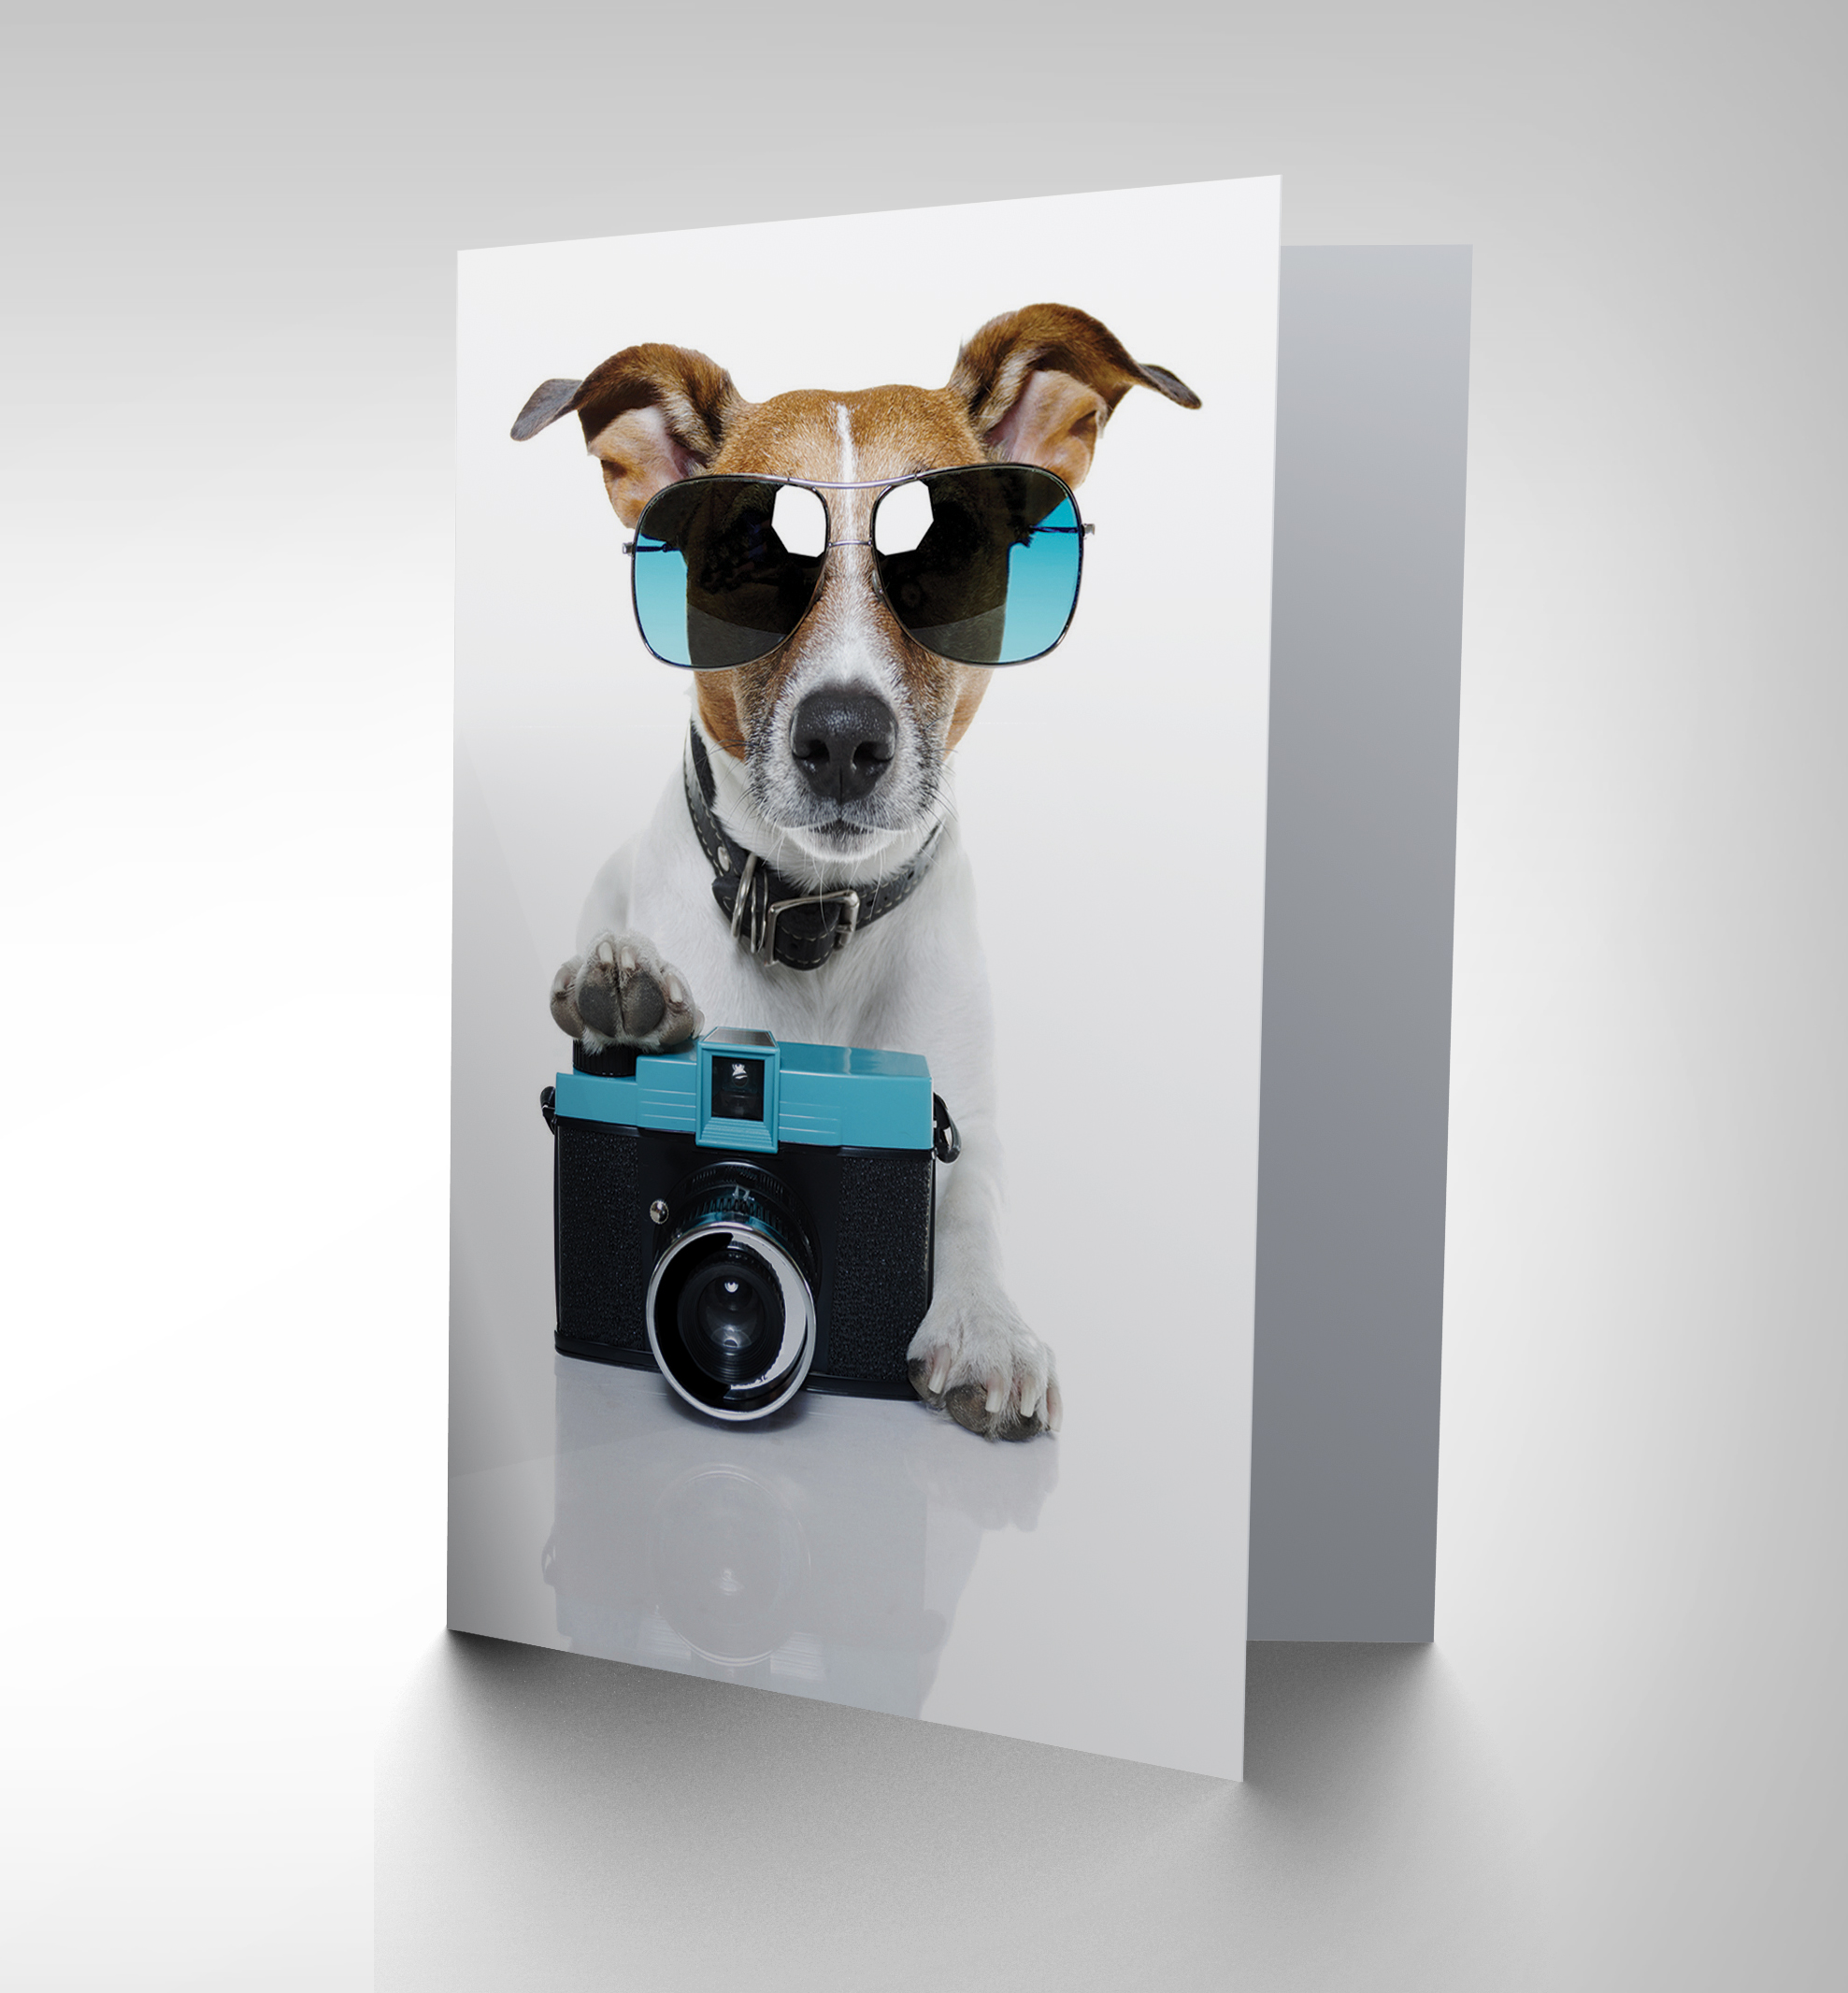 NEW COOL JACK RUSSELL DOG CAMERA PHOTO SUNGLASSES BLANK